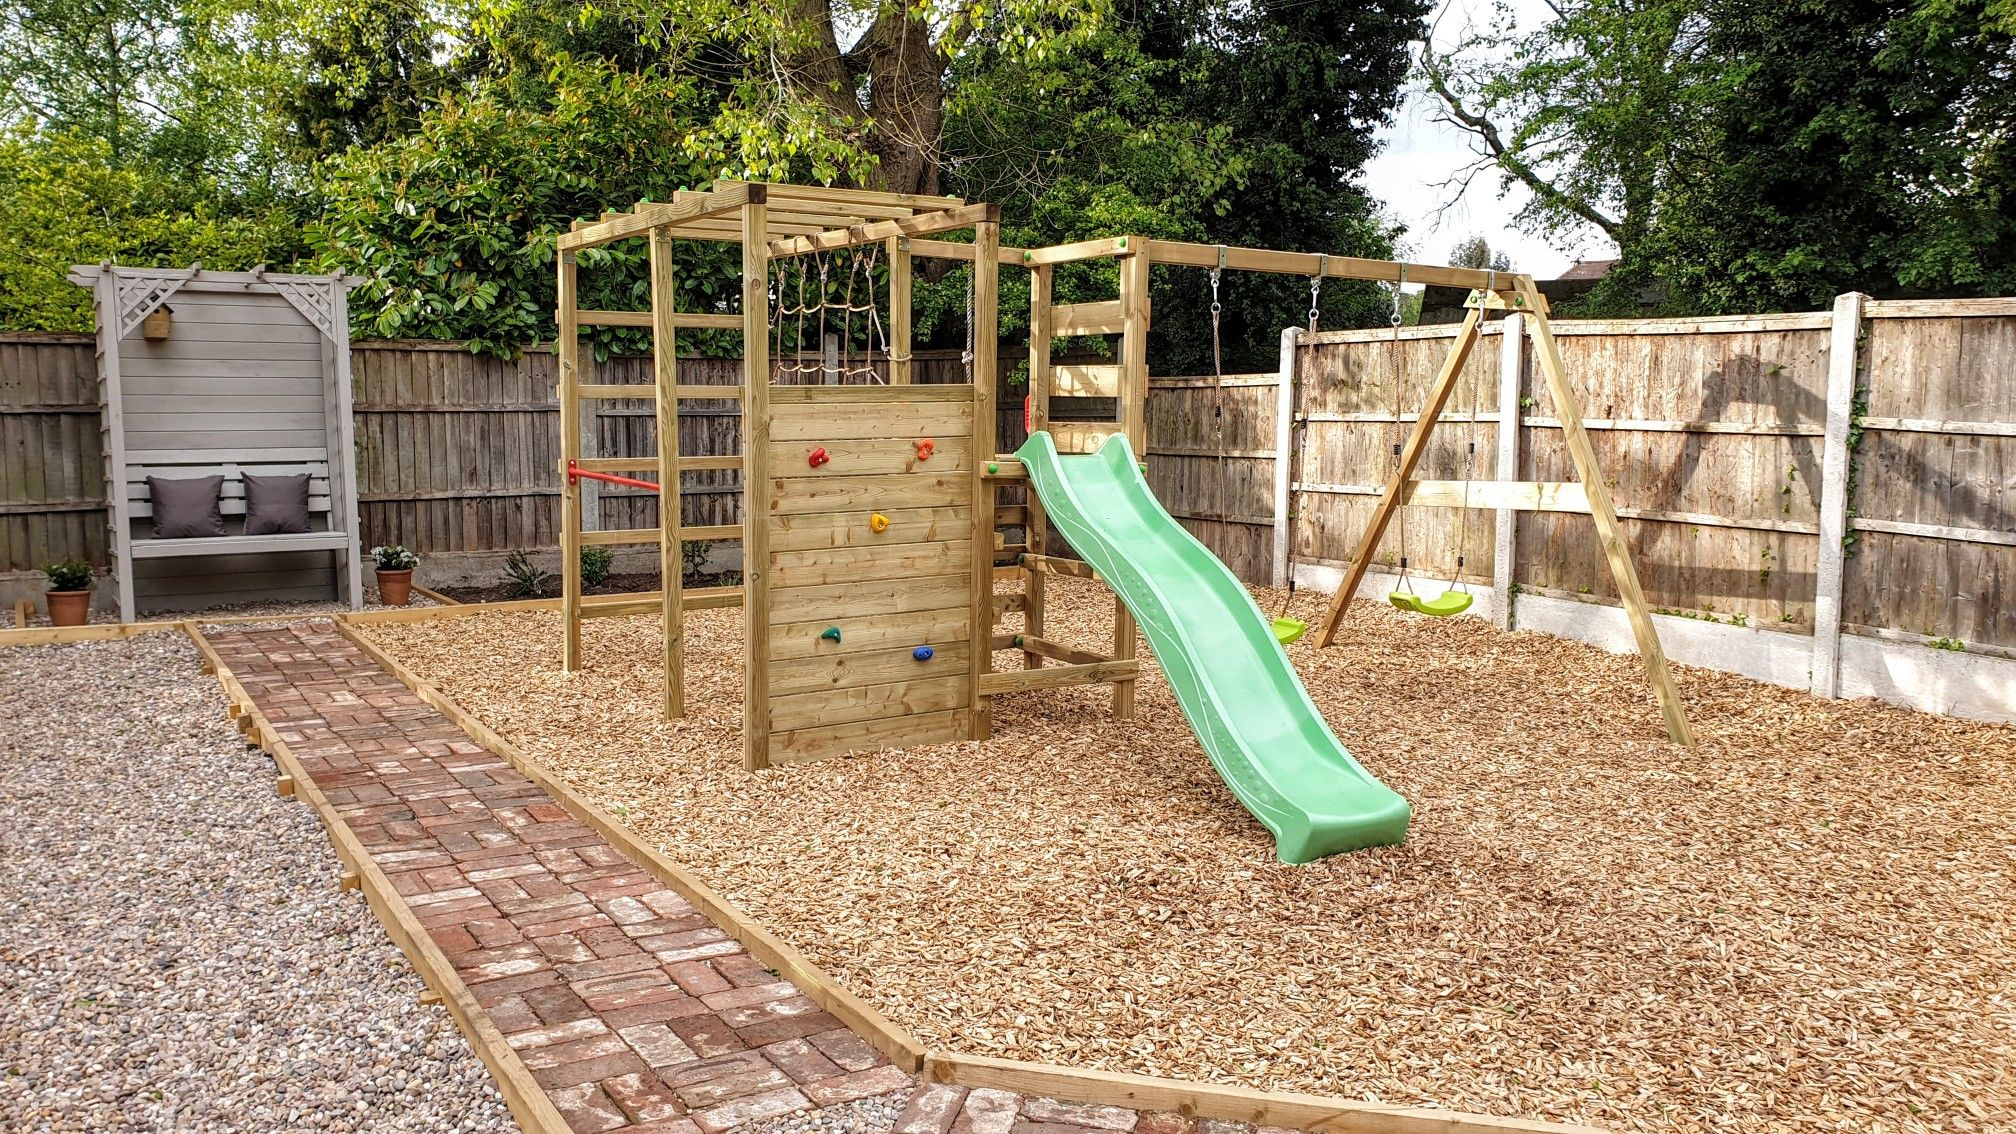 Barked Play Area Outdoor Kids Play Area Play Area Garden Kids Play Area